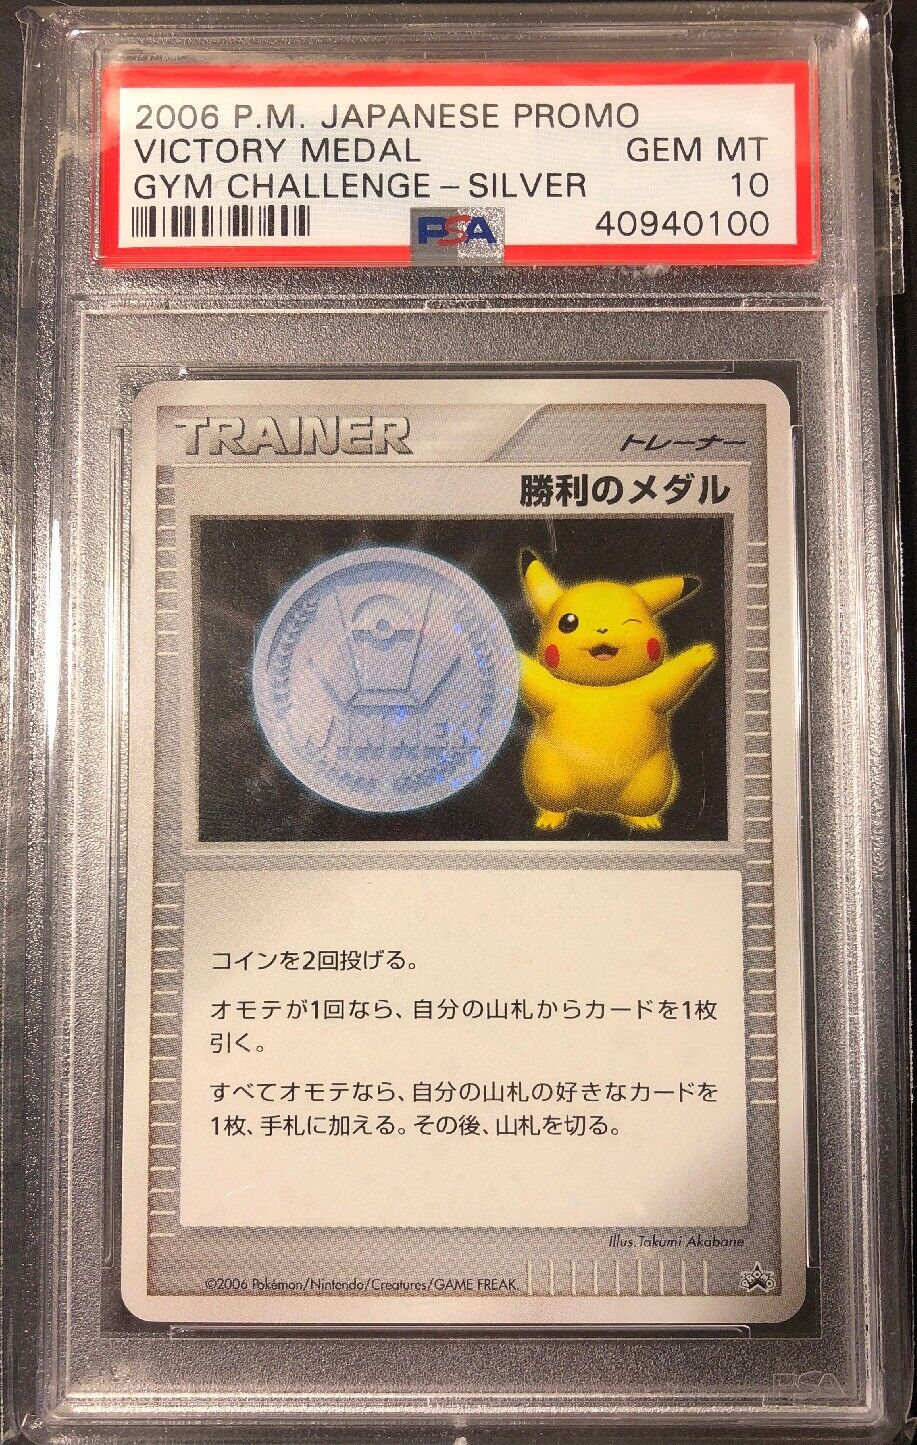 PSA 10 2006 Victory Medal GEM MINT Japanese Gym Challenge Promo Pokemon Card